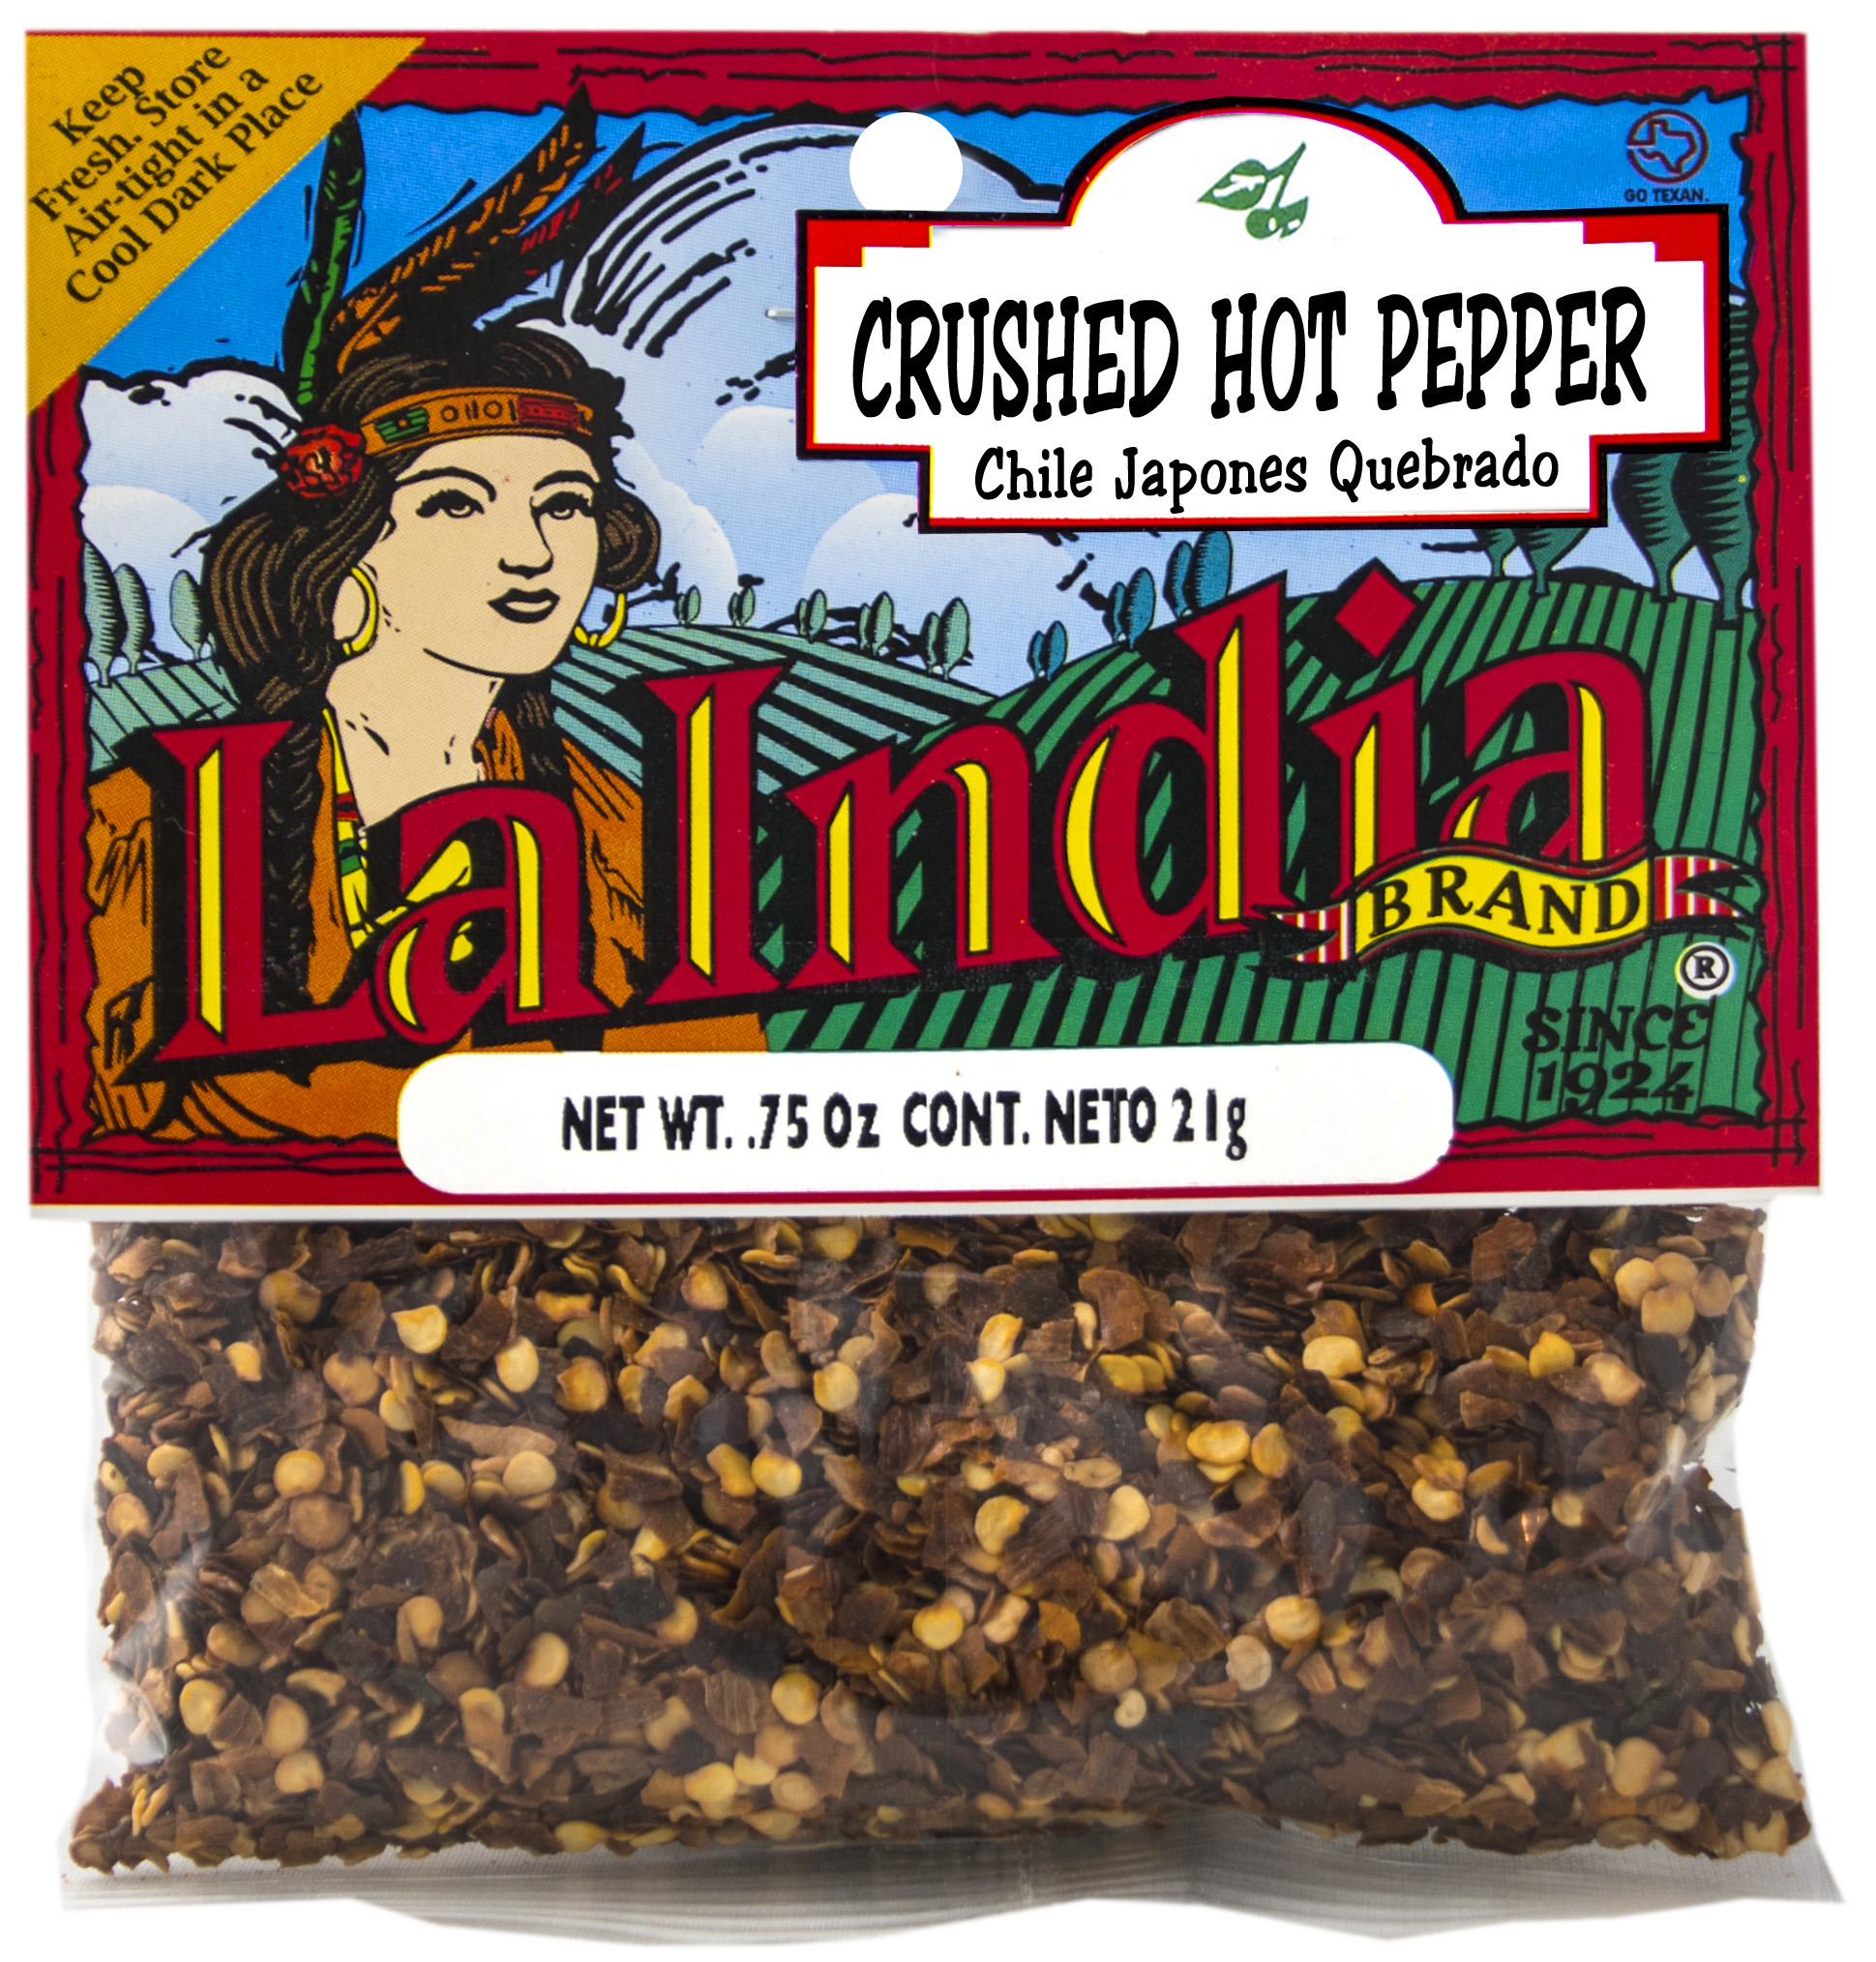 Hot Pepper Crushed Cello Bags (Unit)